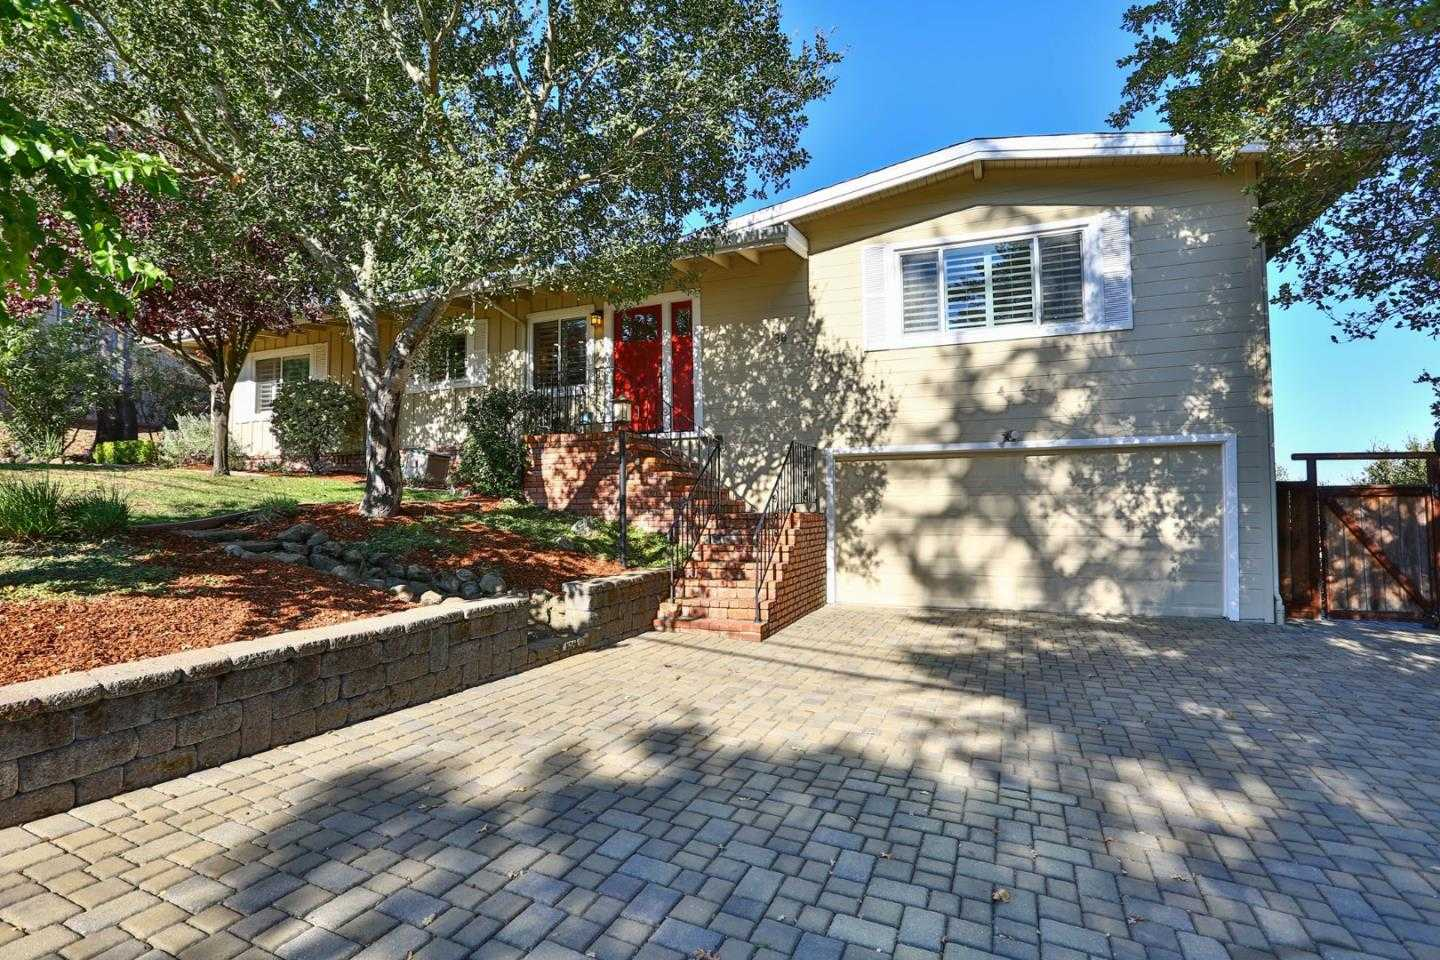 $1,399,000 - 3Br/2Ba -  for Sale in Orinda